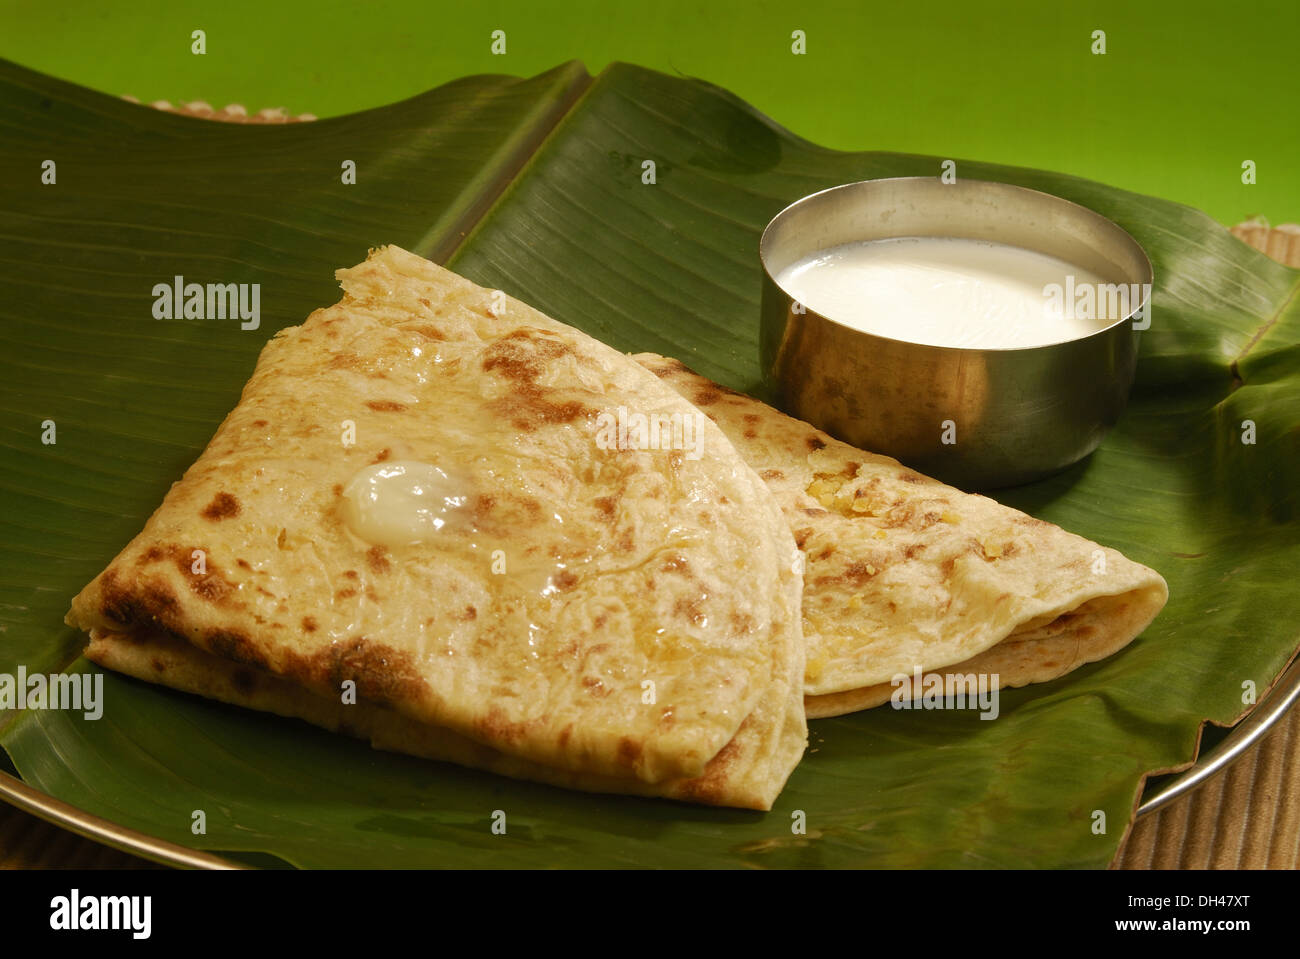 Indian Food Sweet Puran Poli With Ghee And Milk Served On Green Banana Leaf